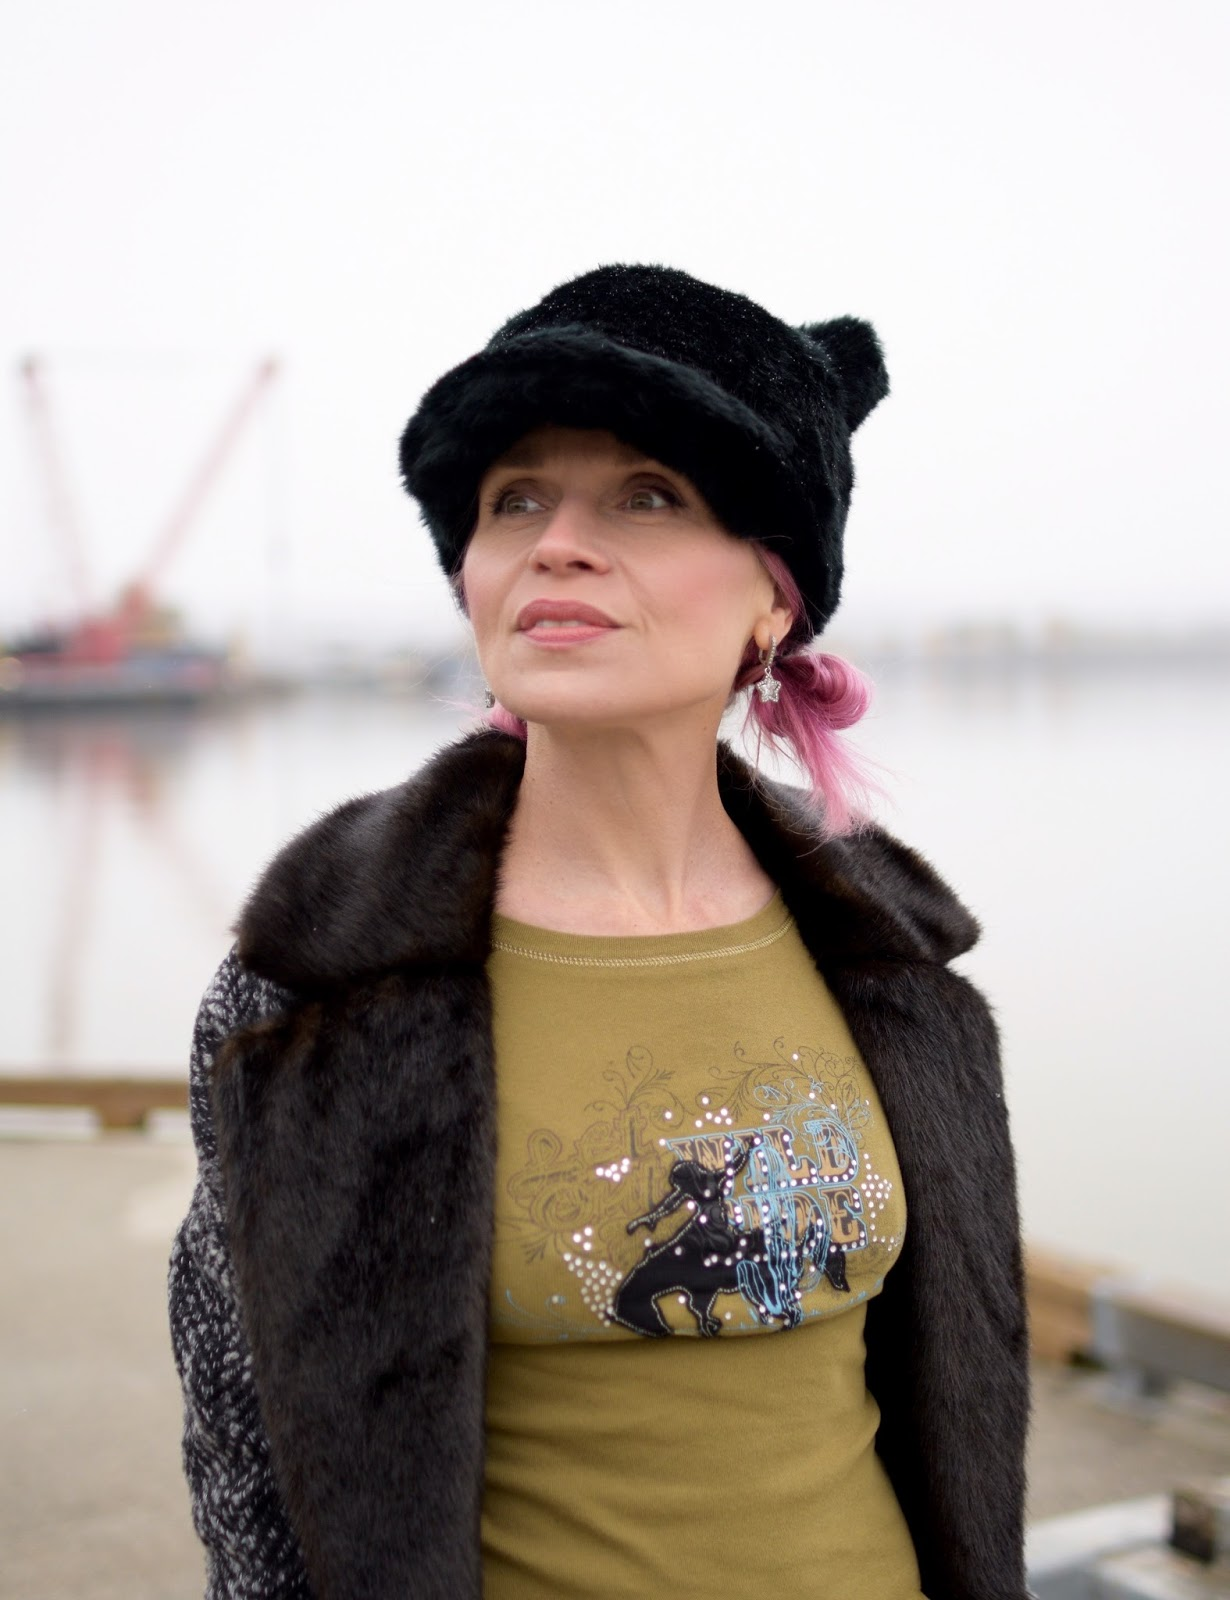 Monika Faulkner outfit inspiration - fur-collared coat, graphic t-shirt, Kate Spade hat with ears